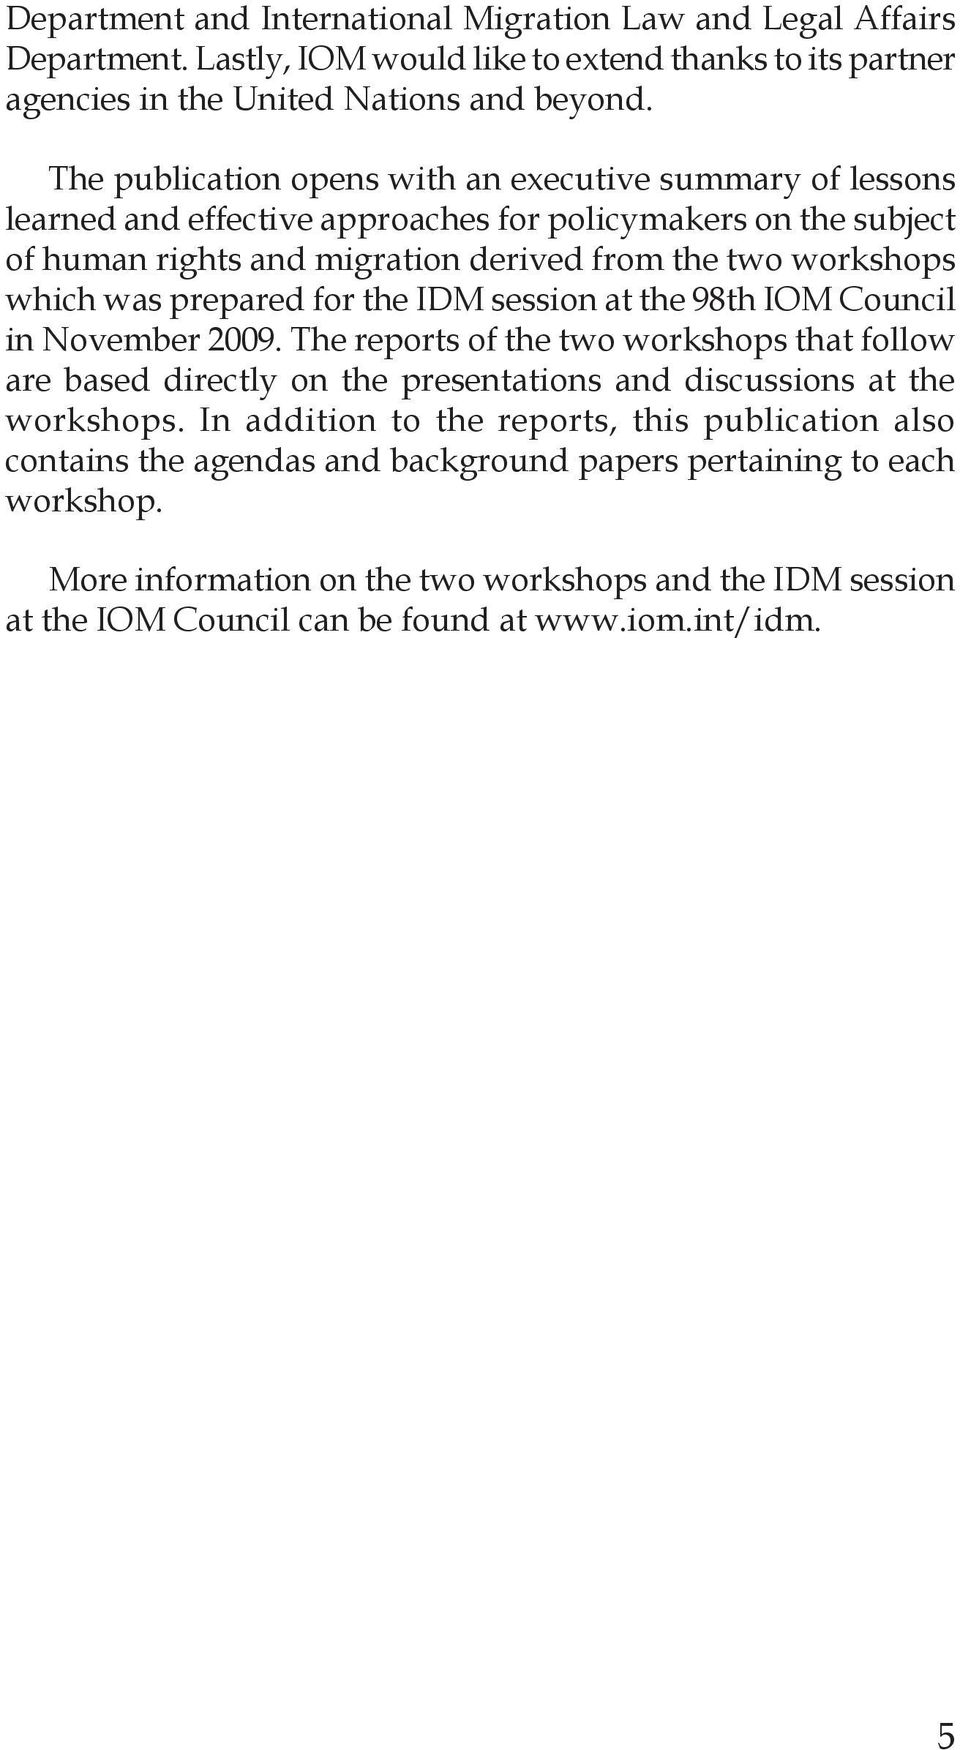 prepared for the IDM session at the 98th IOM Council in November 2009. The reports of the two workshops that follow are based directly on the presentations and discussions at the workshops.